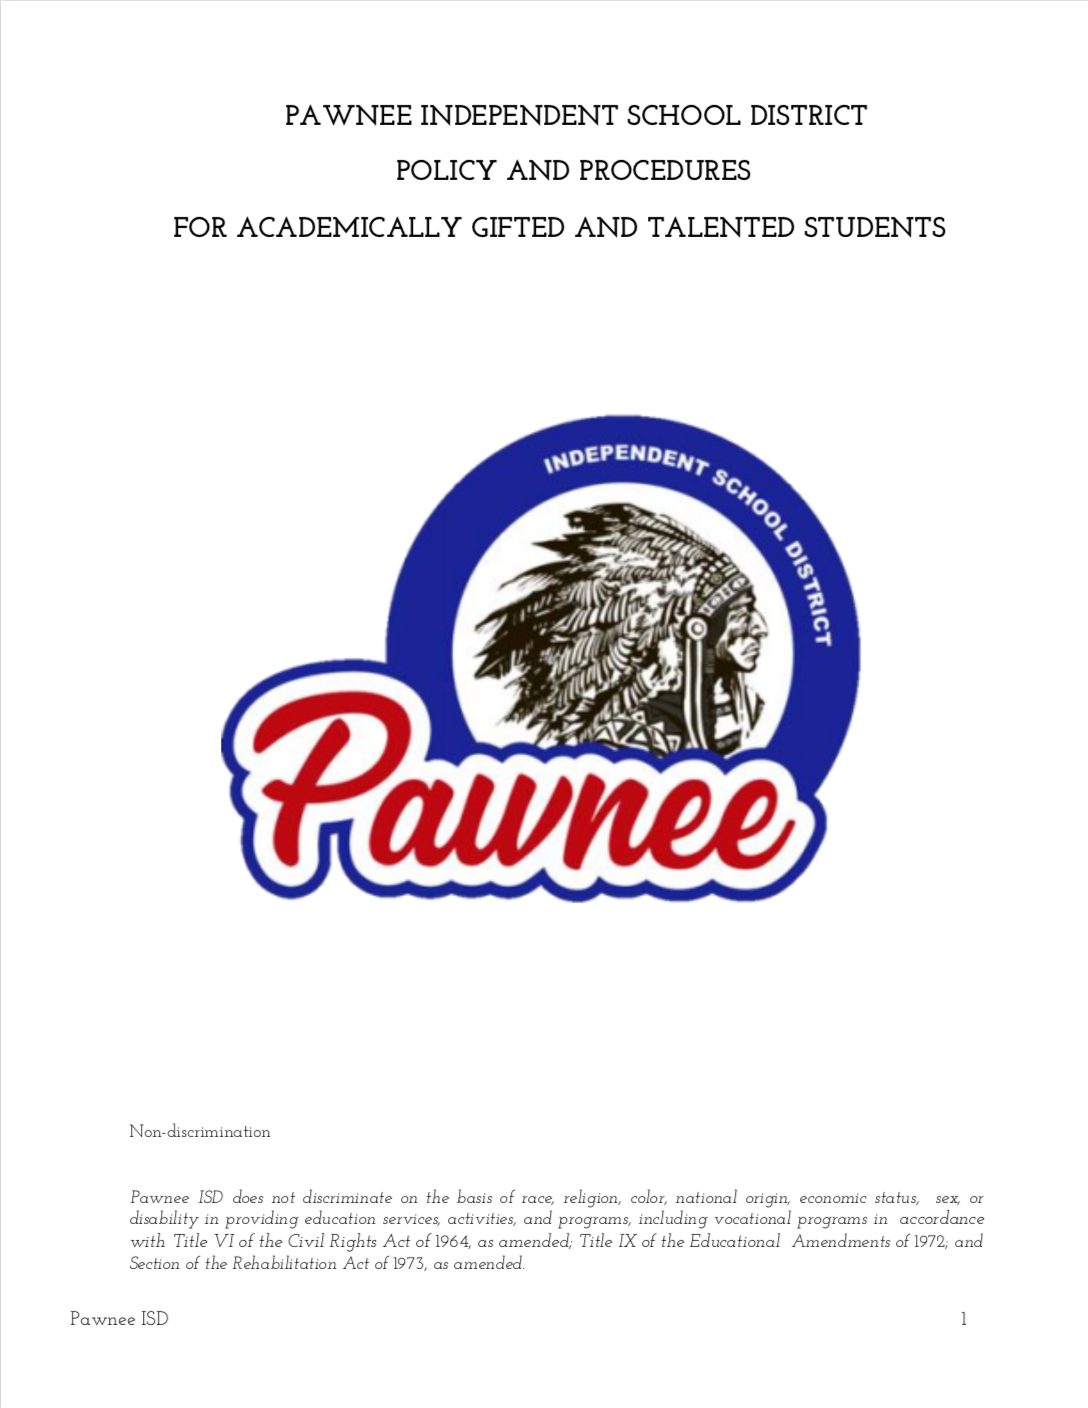 Gifted and Talented Pawnee